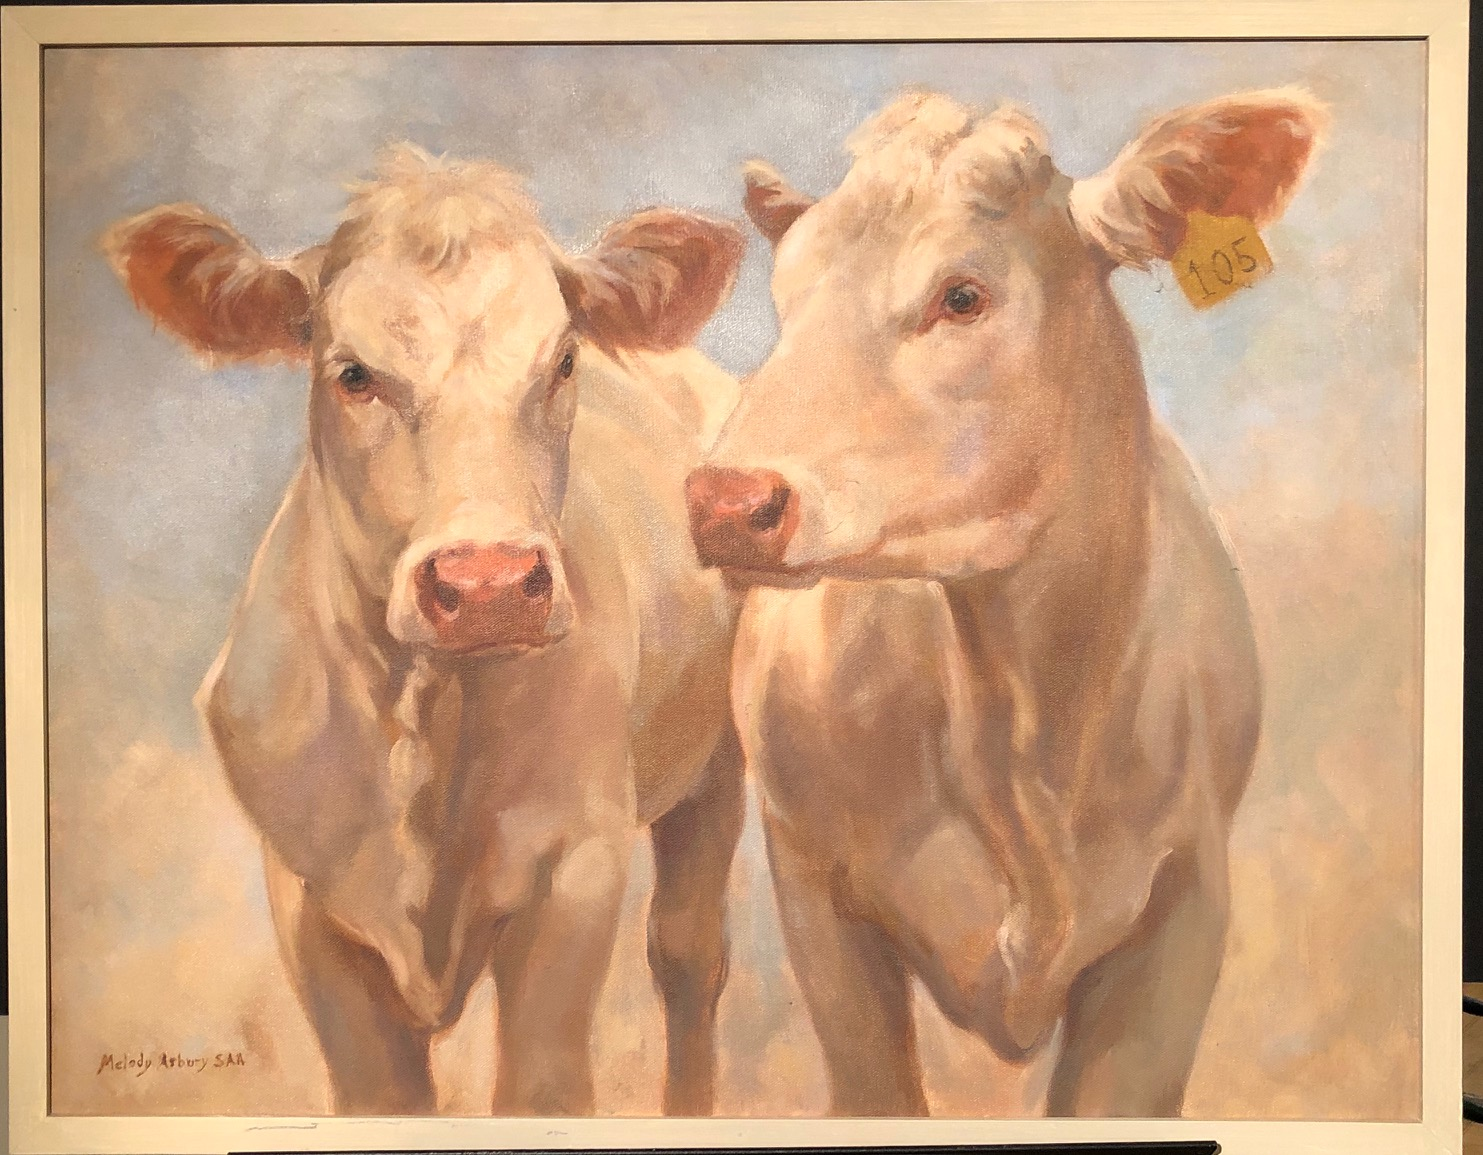 A painting of two white cows